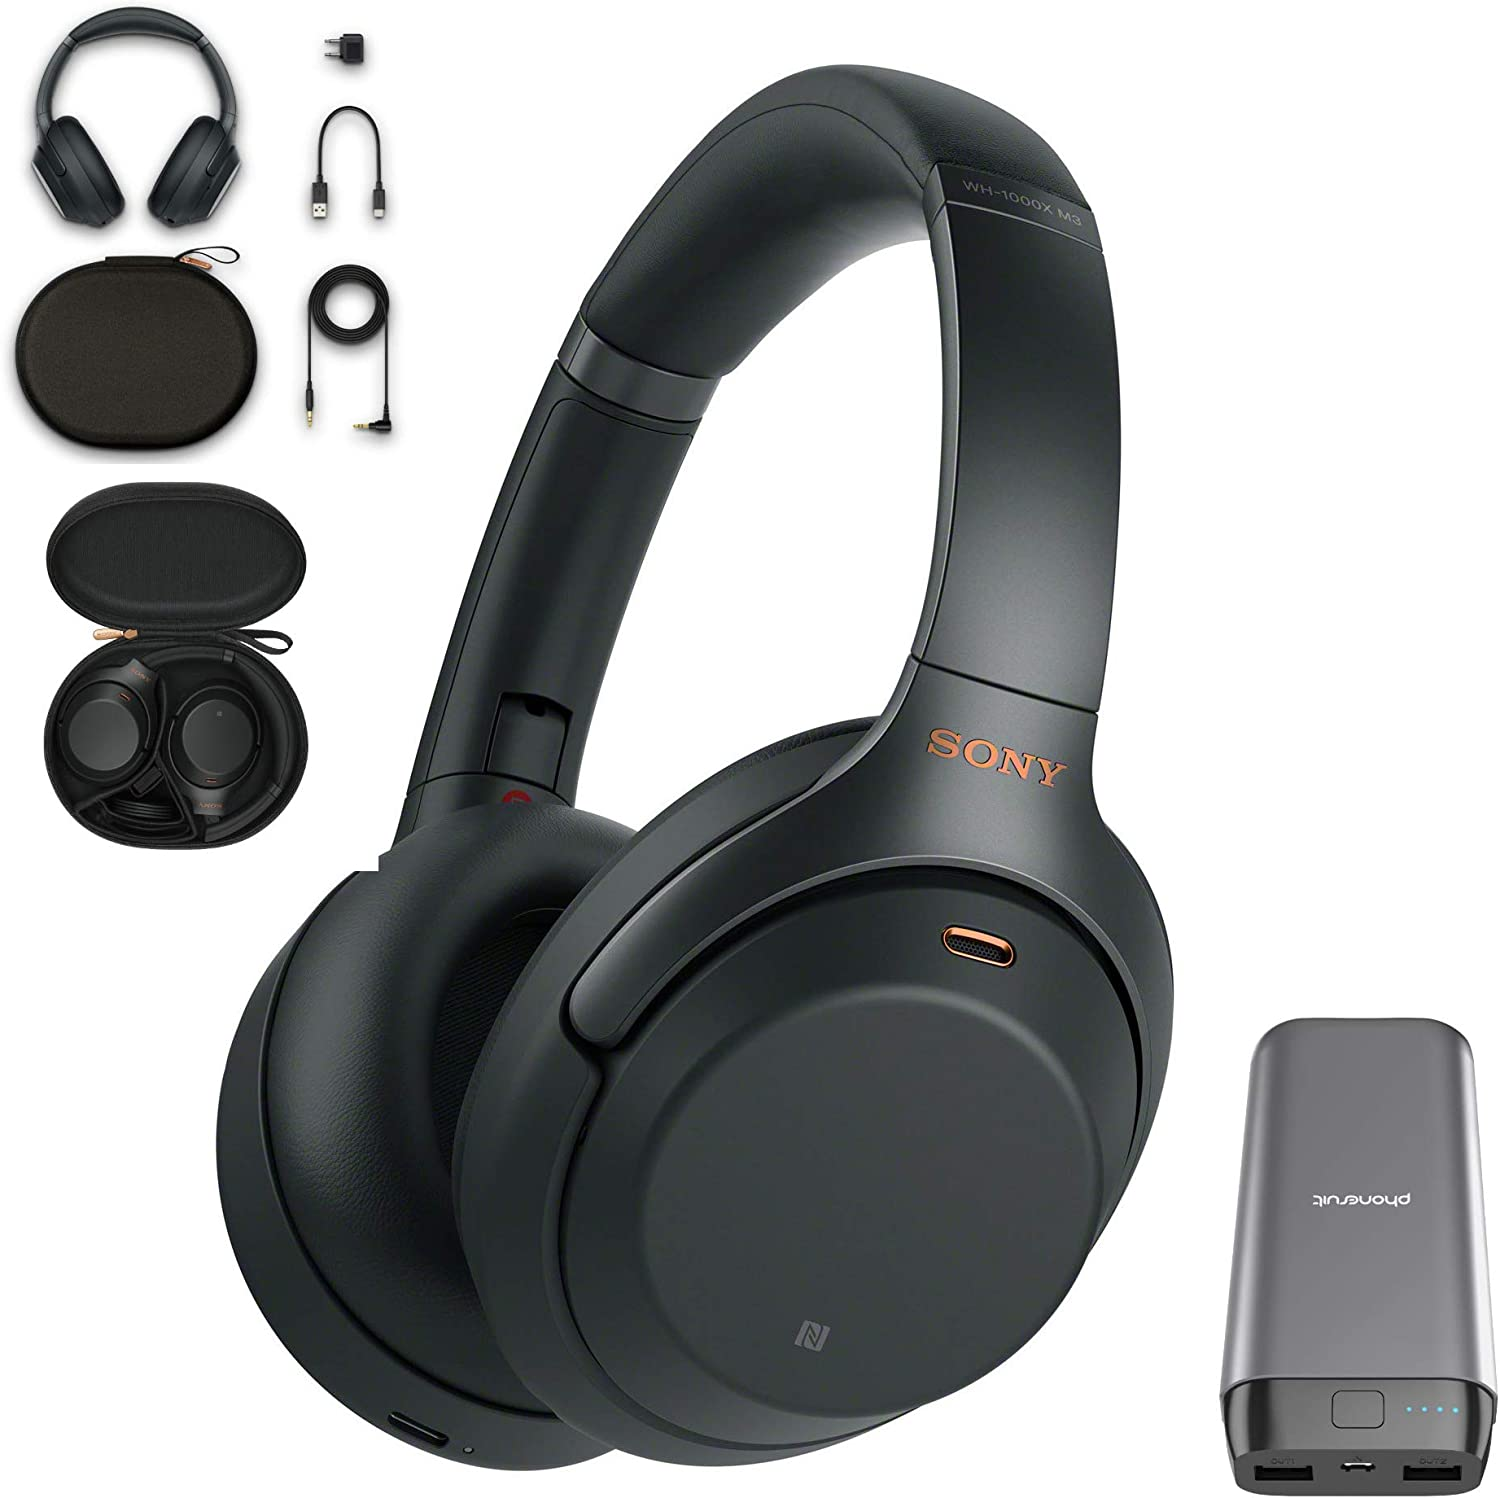 Sony WH-1000XM3 Wireless Noise Canceling Over Ear Headphones with Voice Assistant, Black WH-1000XM3 B, USA Warranty with 20,000mAh High Capacity Portable Power Bank Bundle